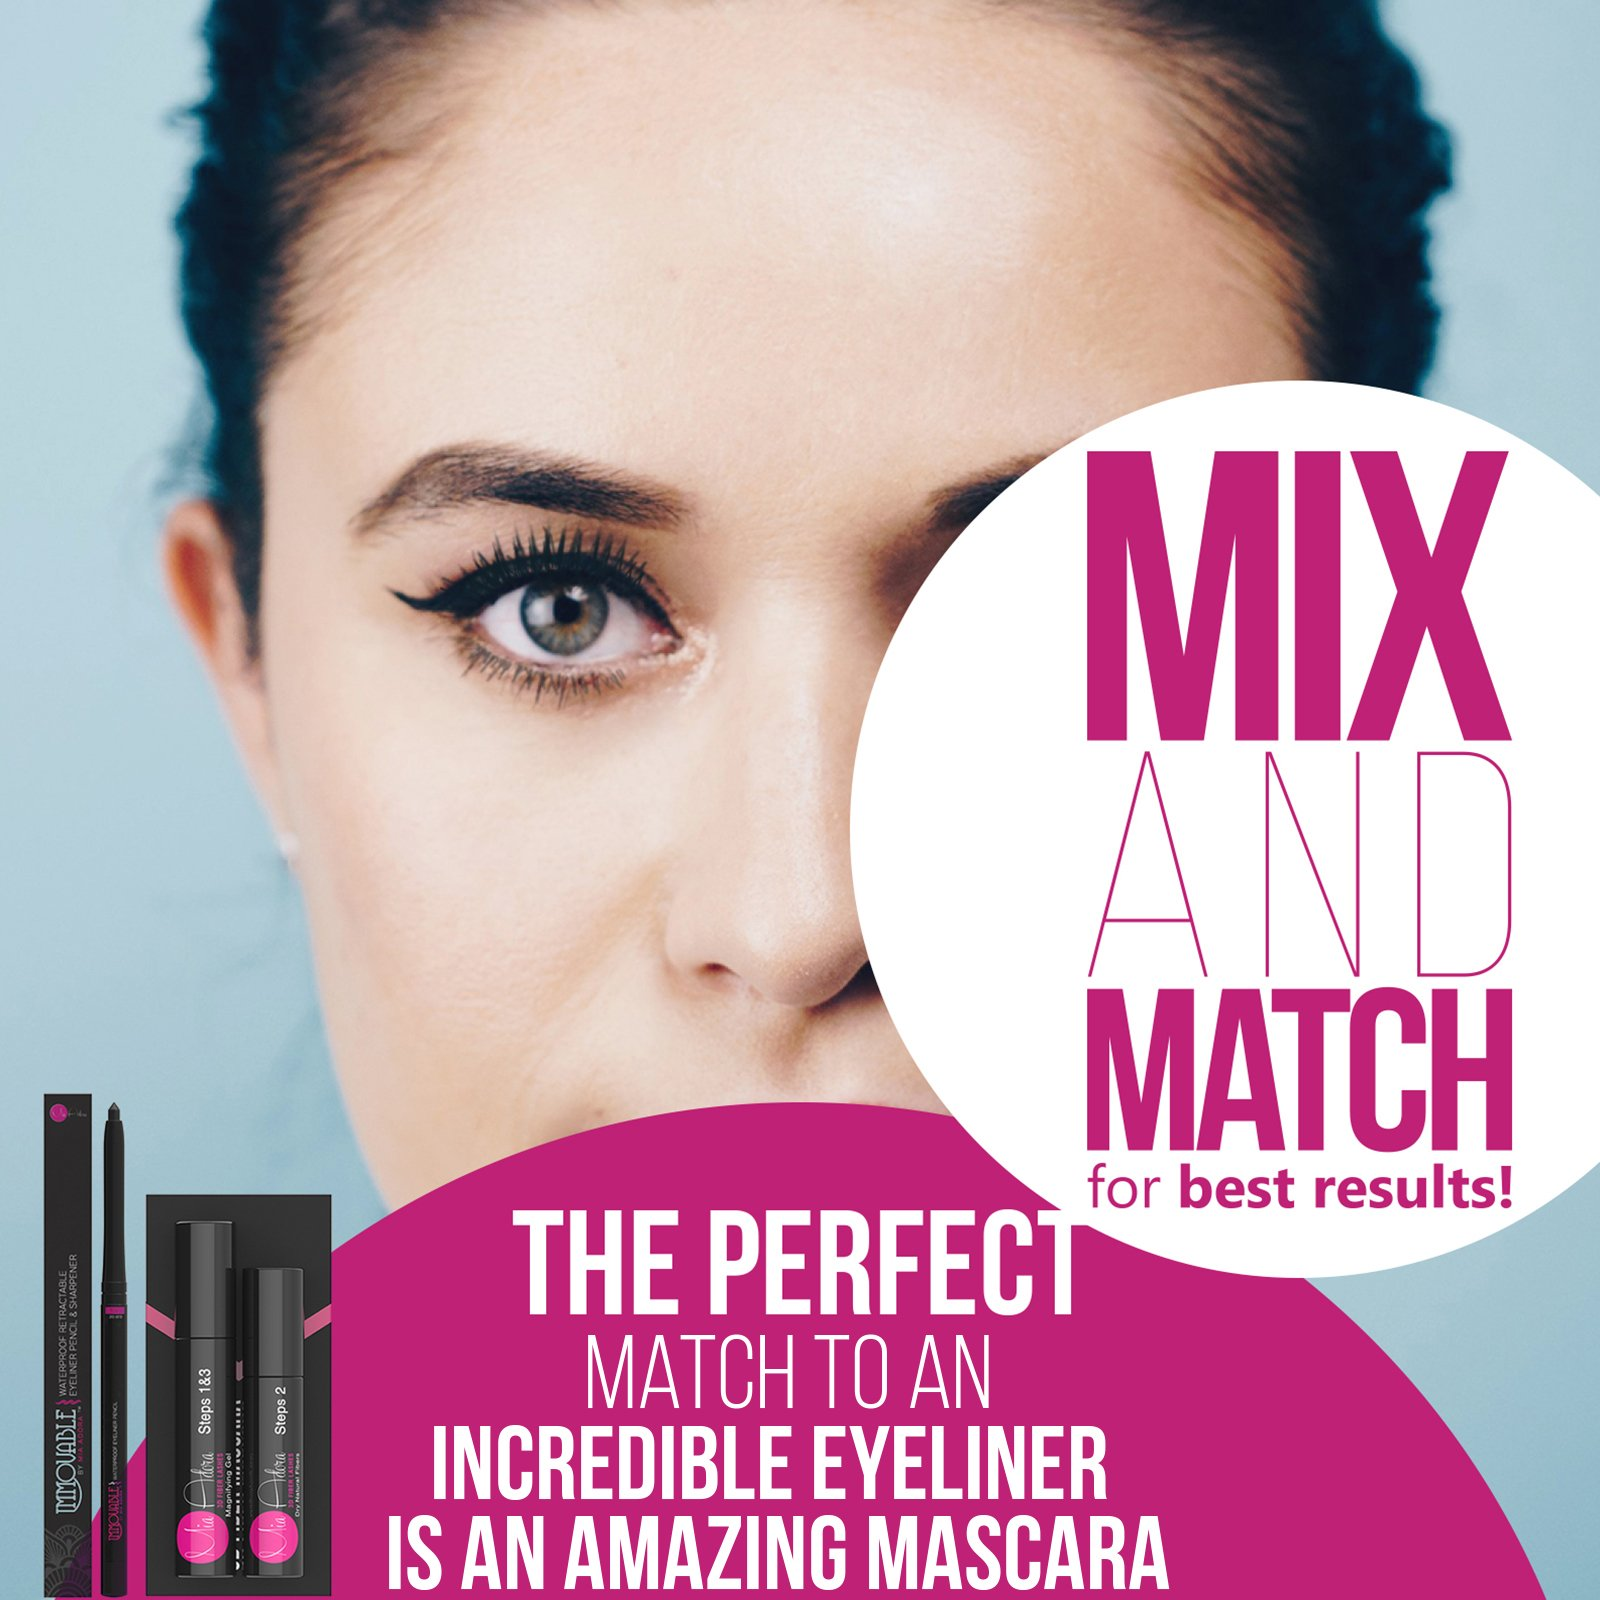 Best Black Waterproof Eyeliner Pencil with Sharpener - 12 Hour Wear - Easy to Use & Perfect Eye Liner for Your Cat Eyes & Waterline - Immovable by Mia Adora Makeup by MIA ADORA (Image #7)